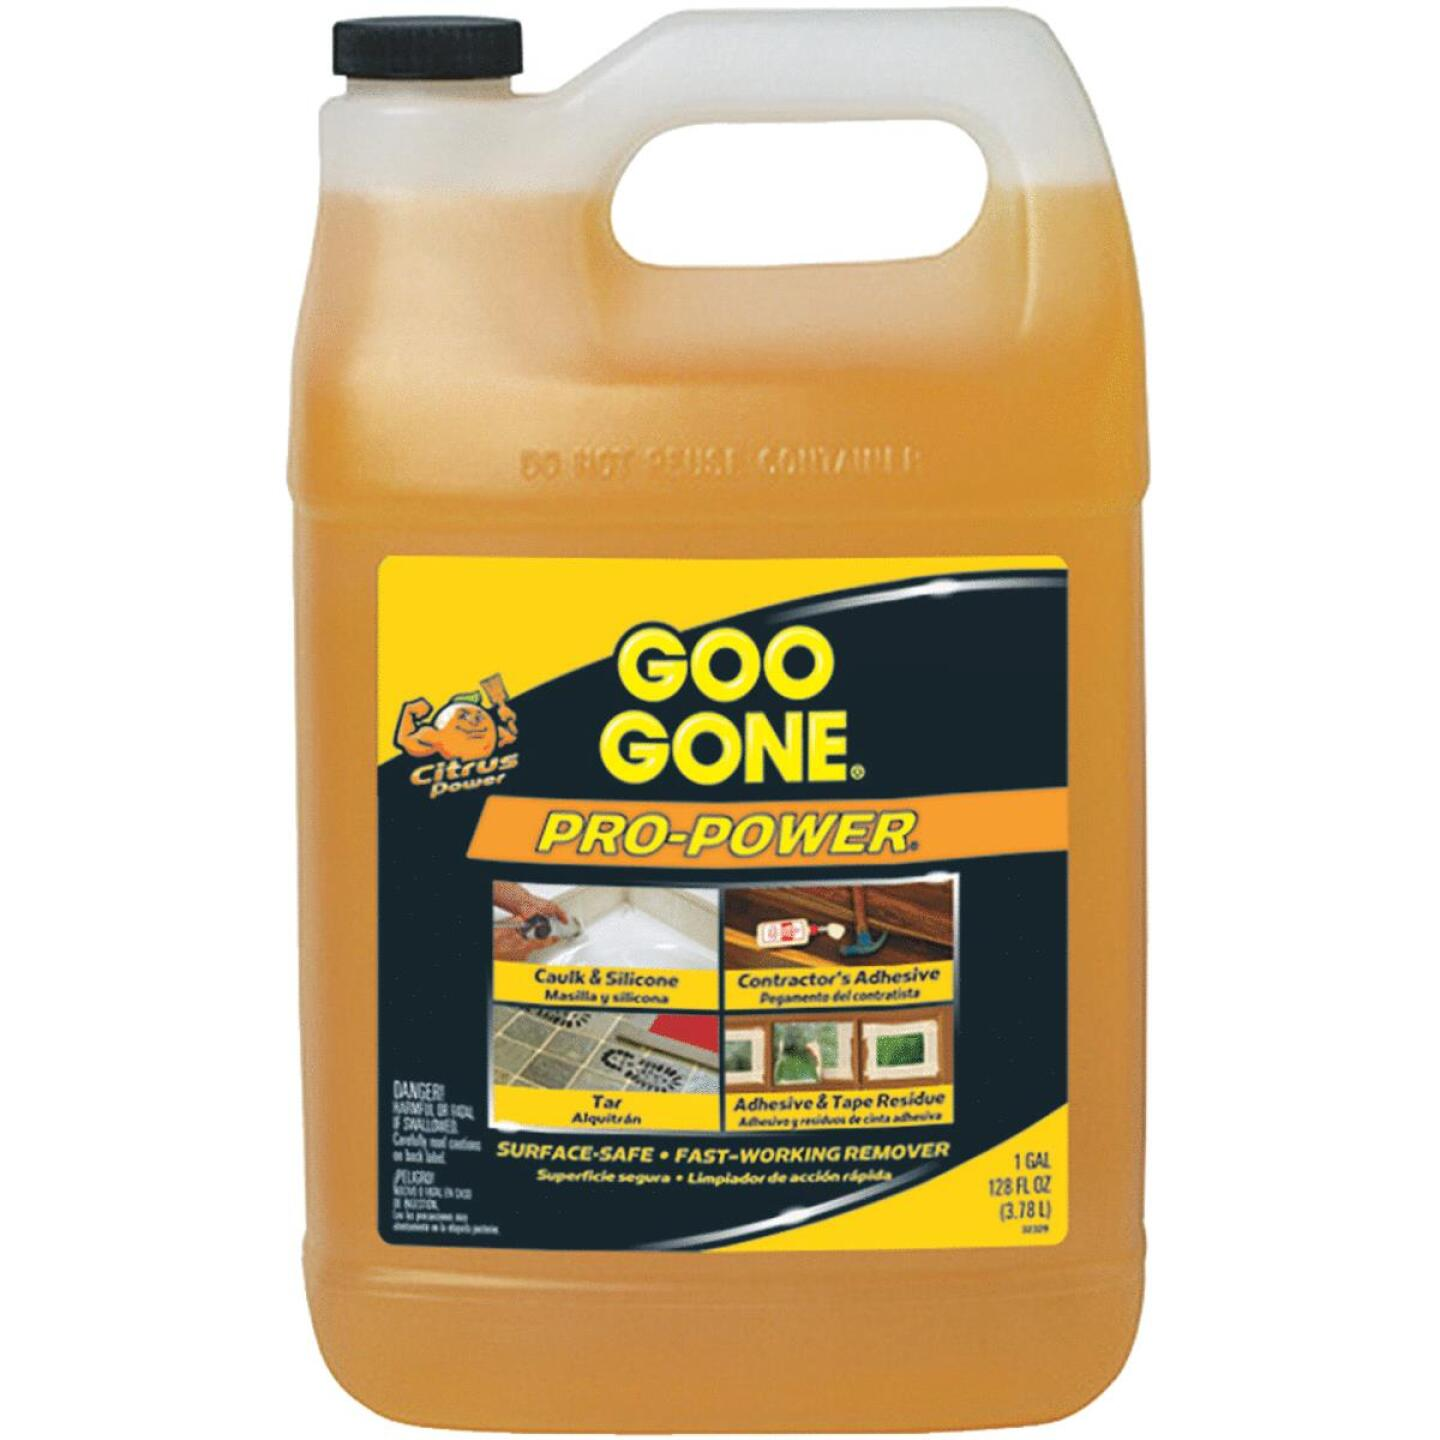 Goo Gone 1 Gal. Pro-Power Adhesive Remover Image 332